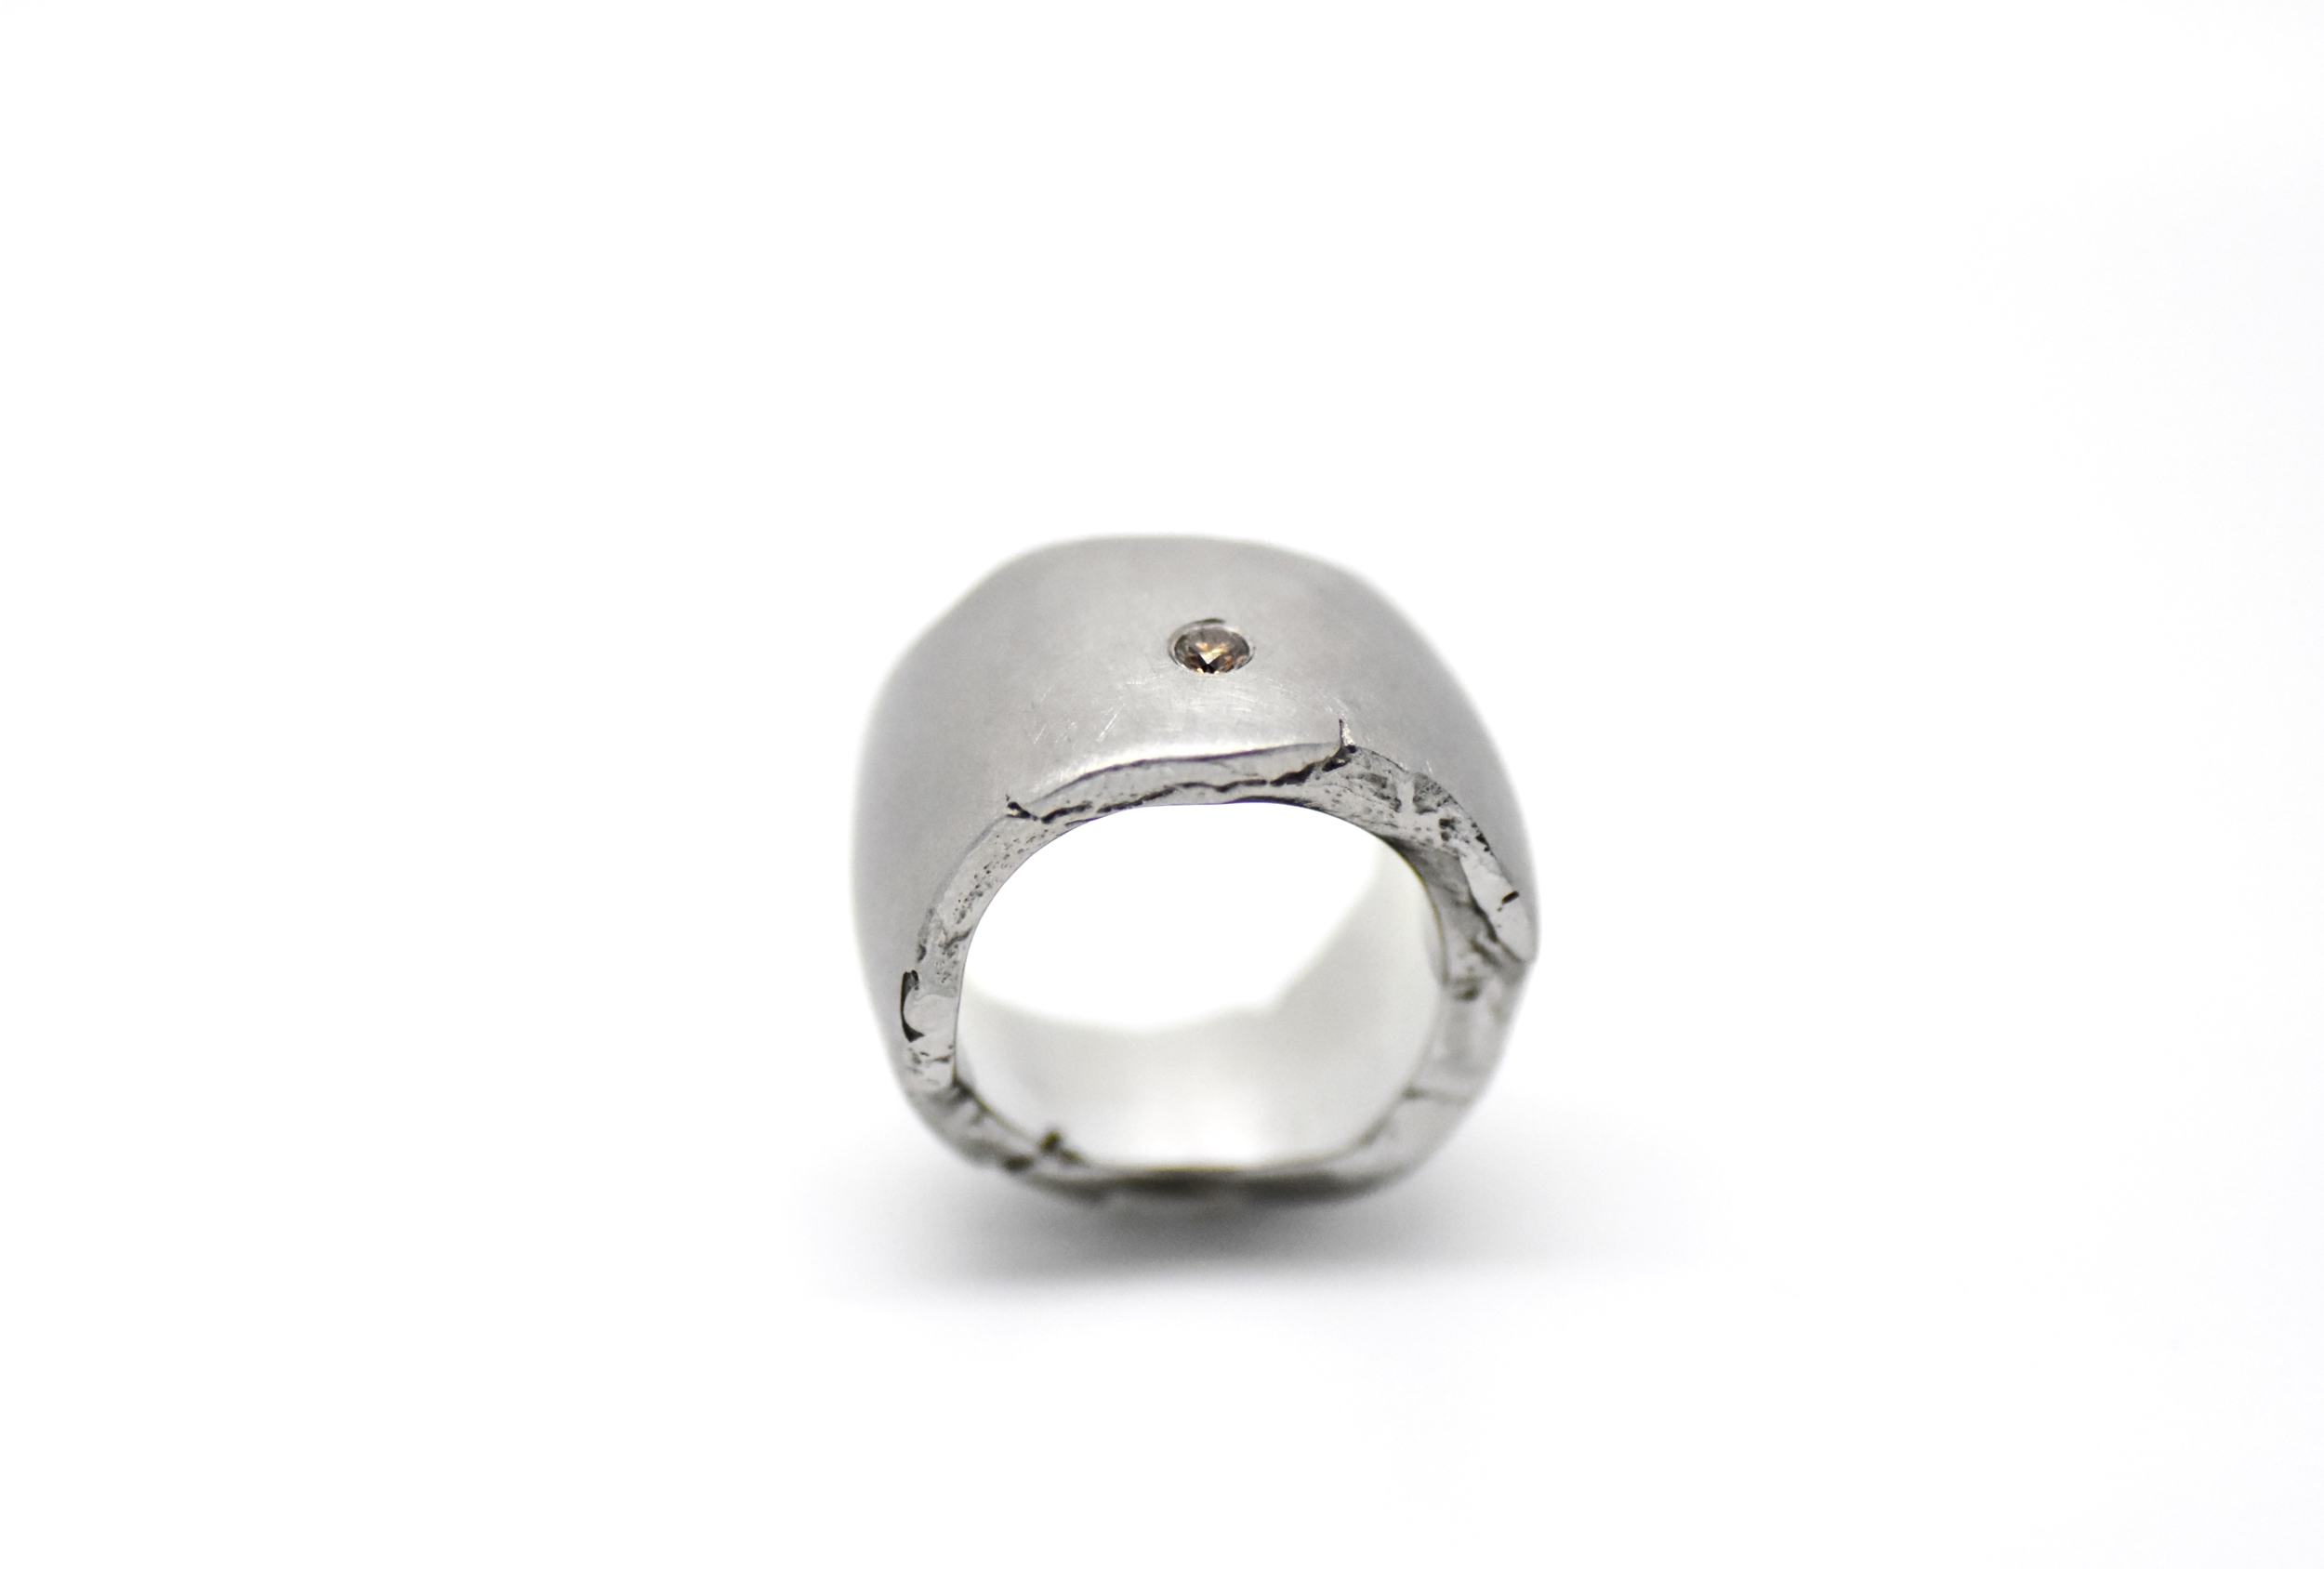 ROCK ring stainless steel 1 fancy color diamond